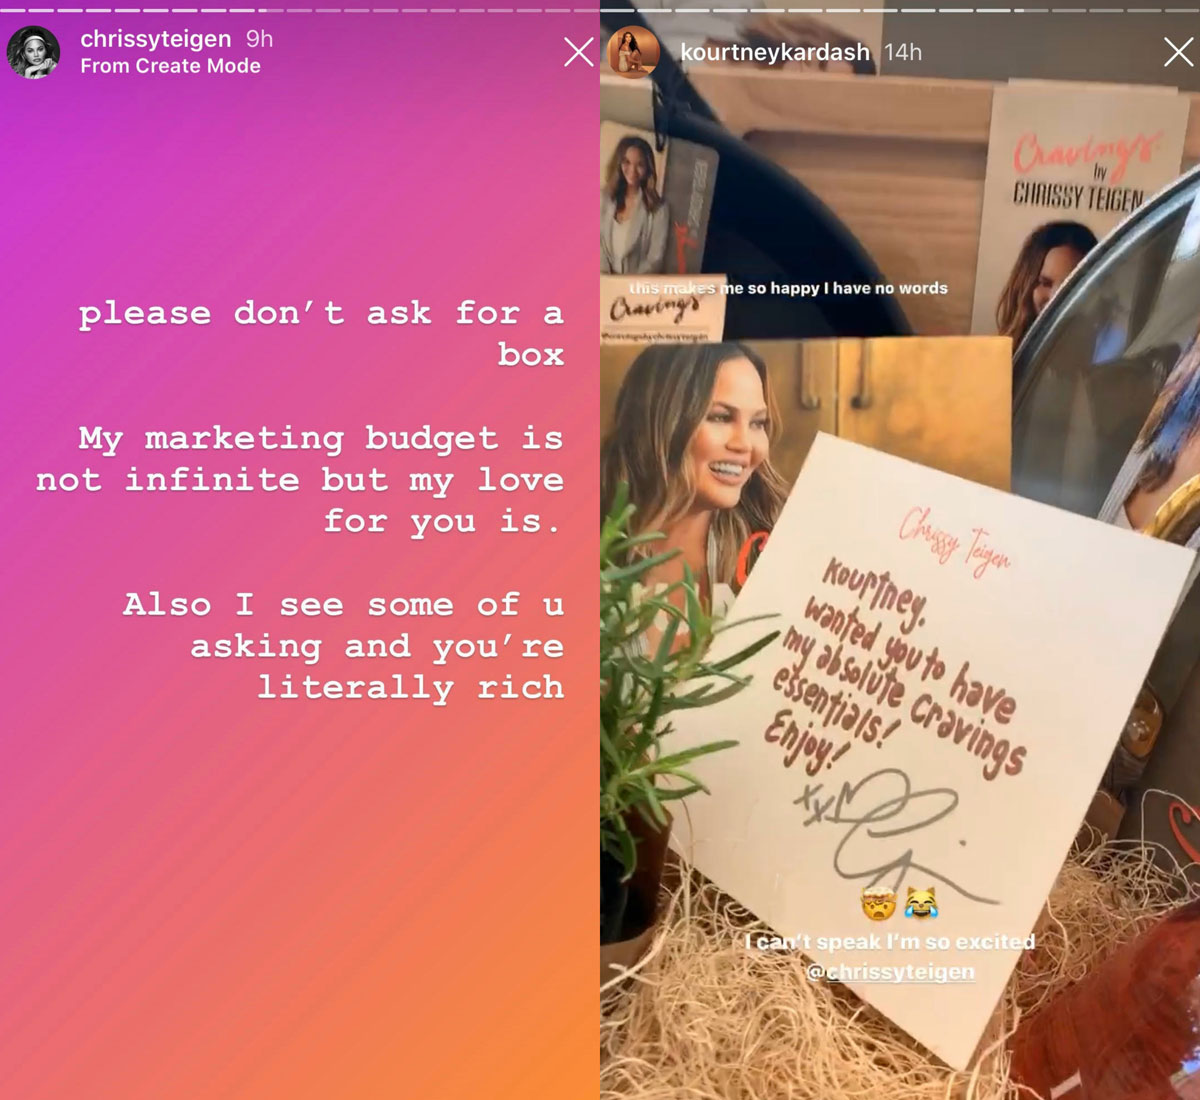 Chrissy Teigen wants her friends to stop asking for free PR boxes